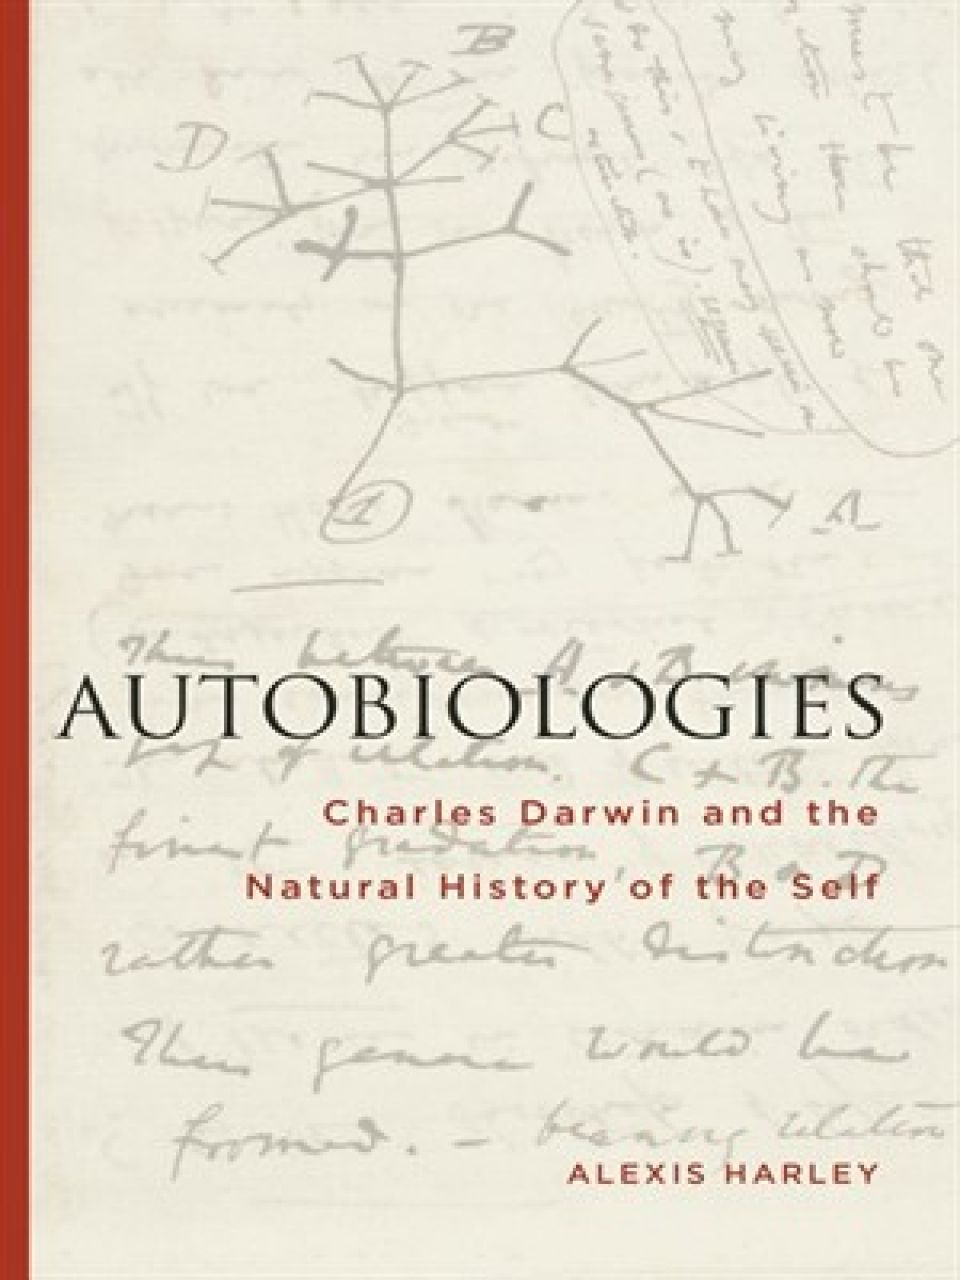 Autobiologies: Charles Darwin and the Natural History of the Self - Alexis Harley